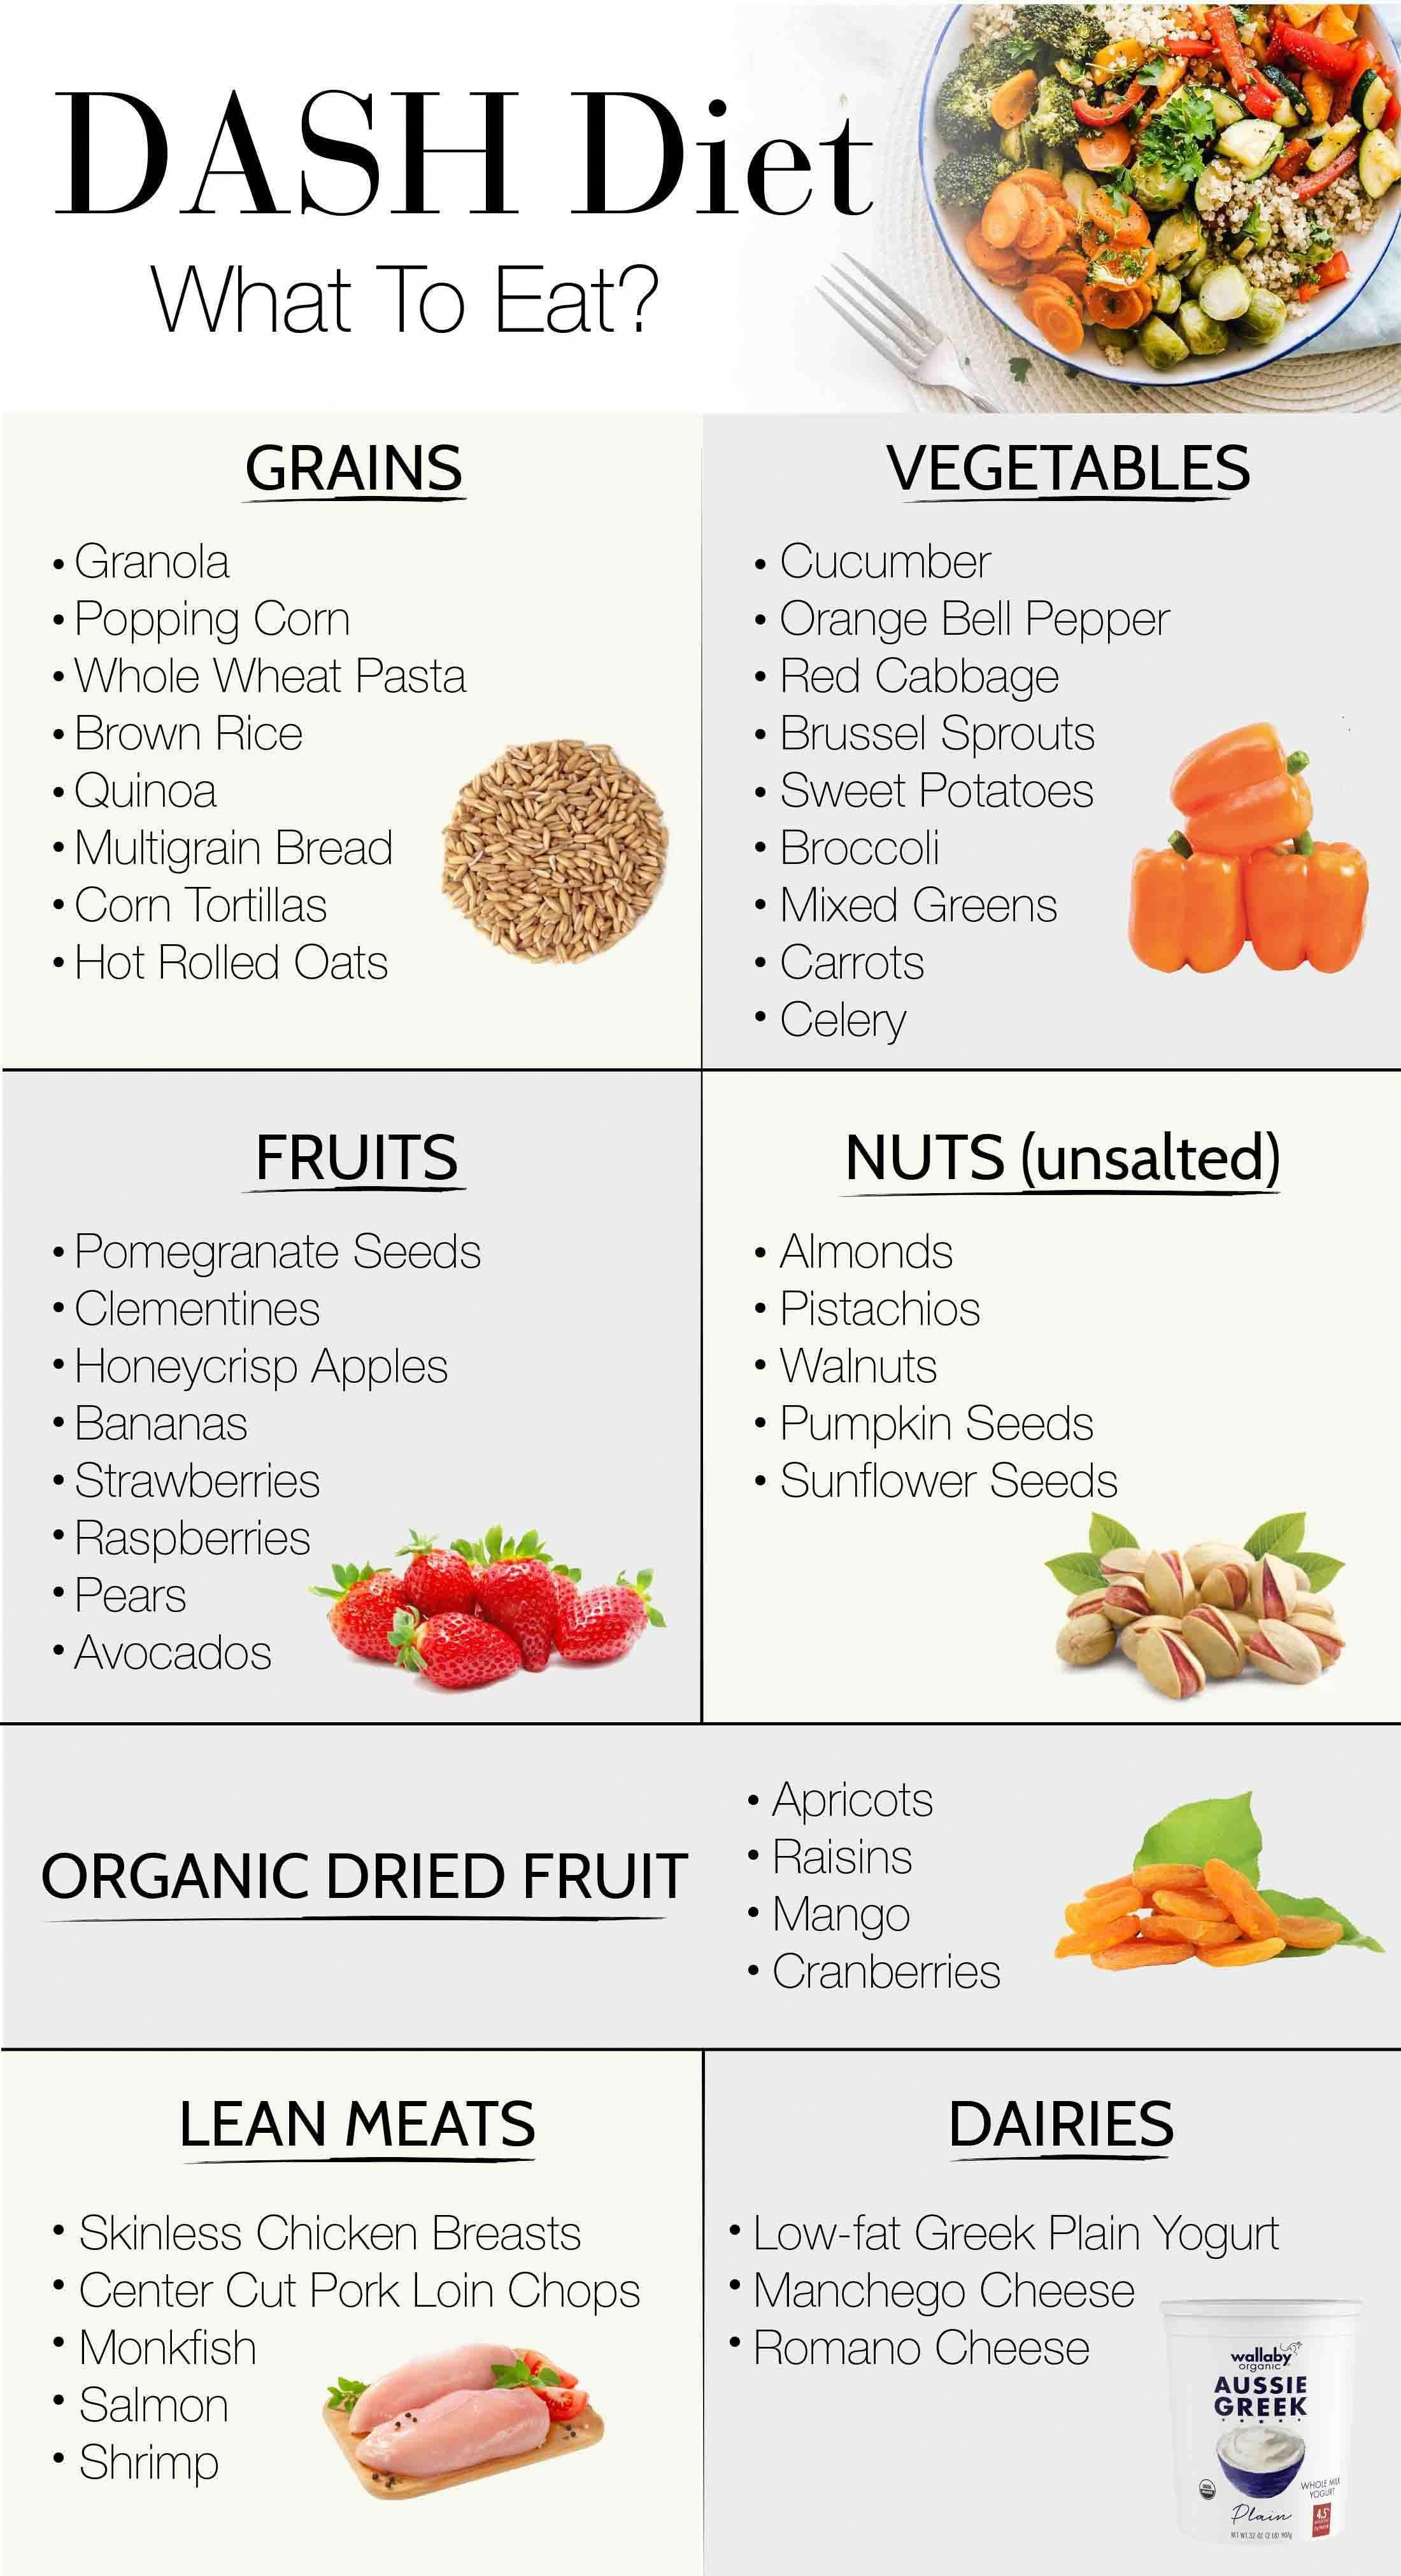 Studies Have Actually Shown That A Plant Based Diet Such As The Mediterranean Diet Plan Or Okinawan Diet Pla Dash Diet Meal Plan Dash Diet Low Sodium Snacks